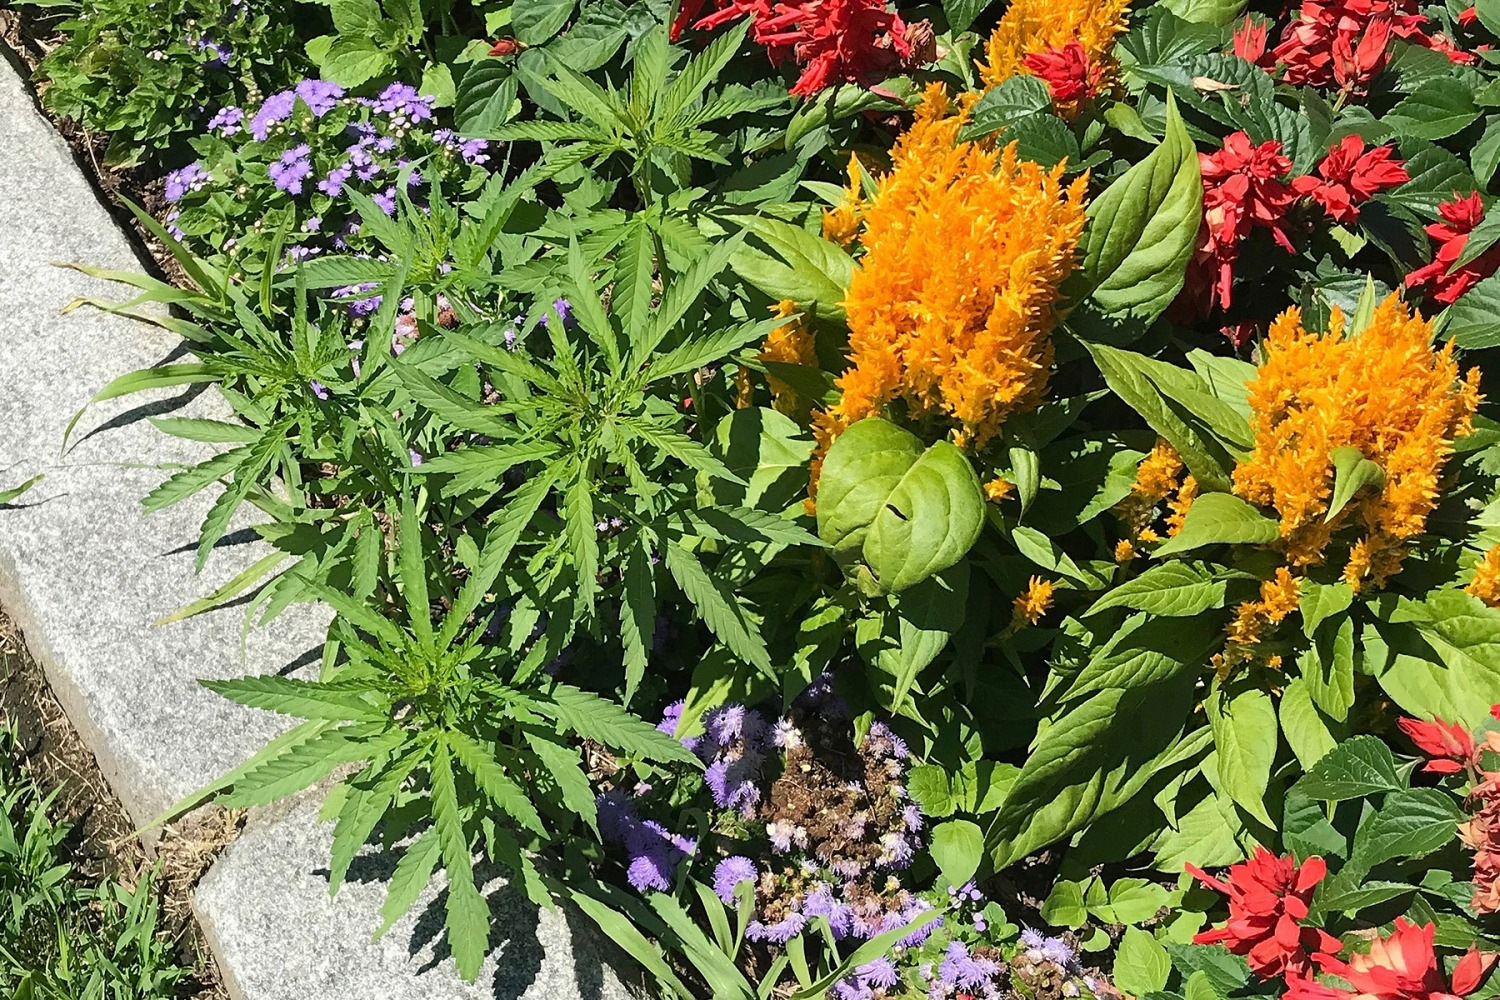 This photo released Friday, July 12, 2019, by the Vermont Capitol Police shows cannabis plants, left, growing on the grounds of the Statehouse in Montpelier, Vt. Police said they found a total of 34 plants during the week among the cultivated flowers that line the walkway in front of the building, but it hadn't been confirmed if the immature plants were marijuana or hemp. (Matthew Romei/Vermont Capitol Police via AP) .